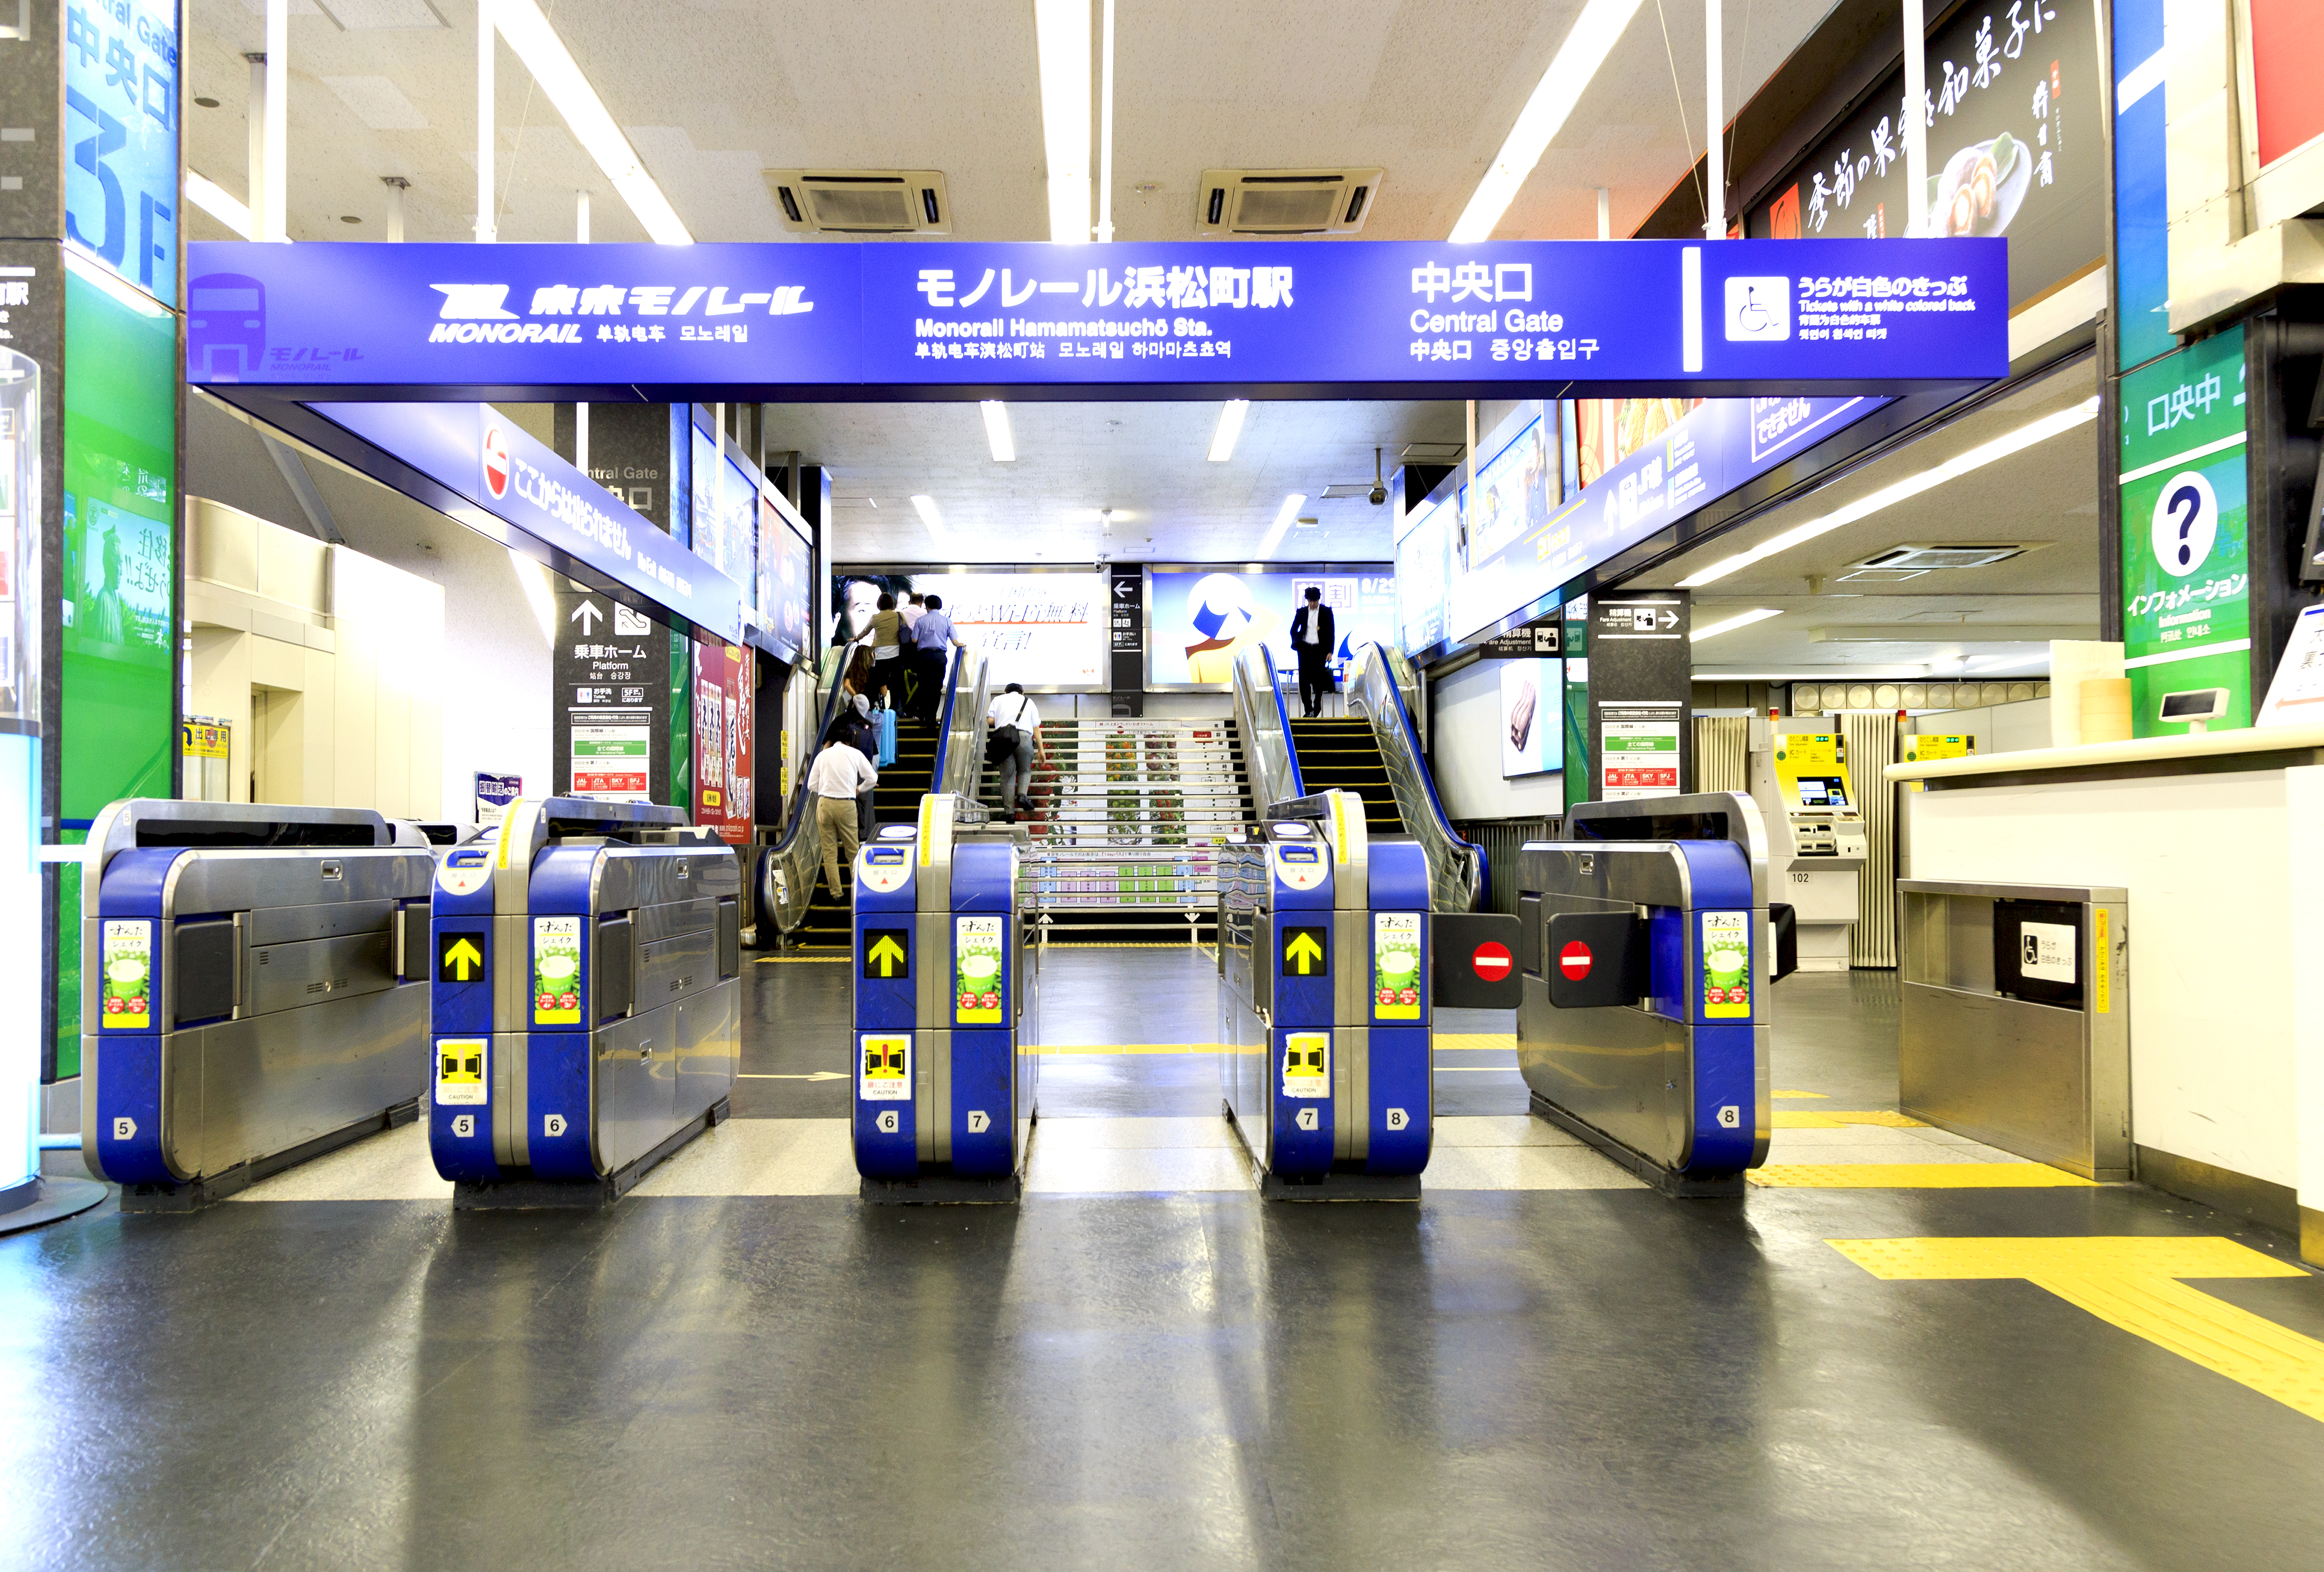 hamamatsucho station ticket gates for transfer to/from tokyo international airport (hnd)